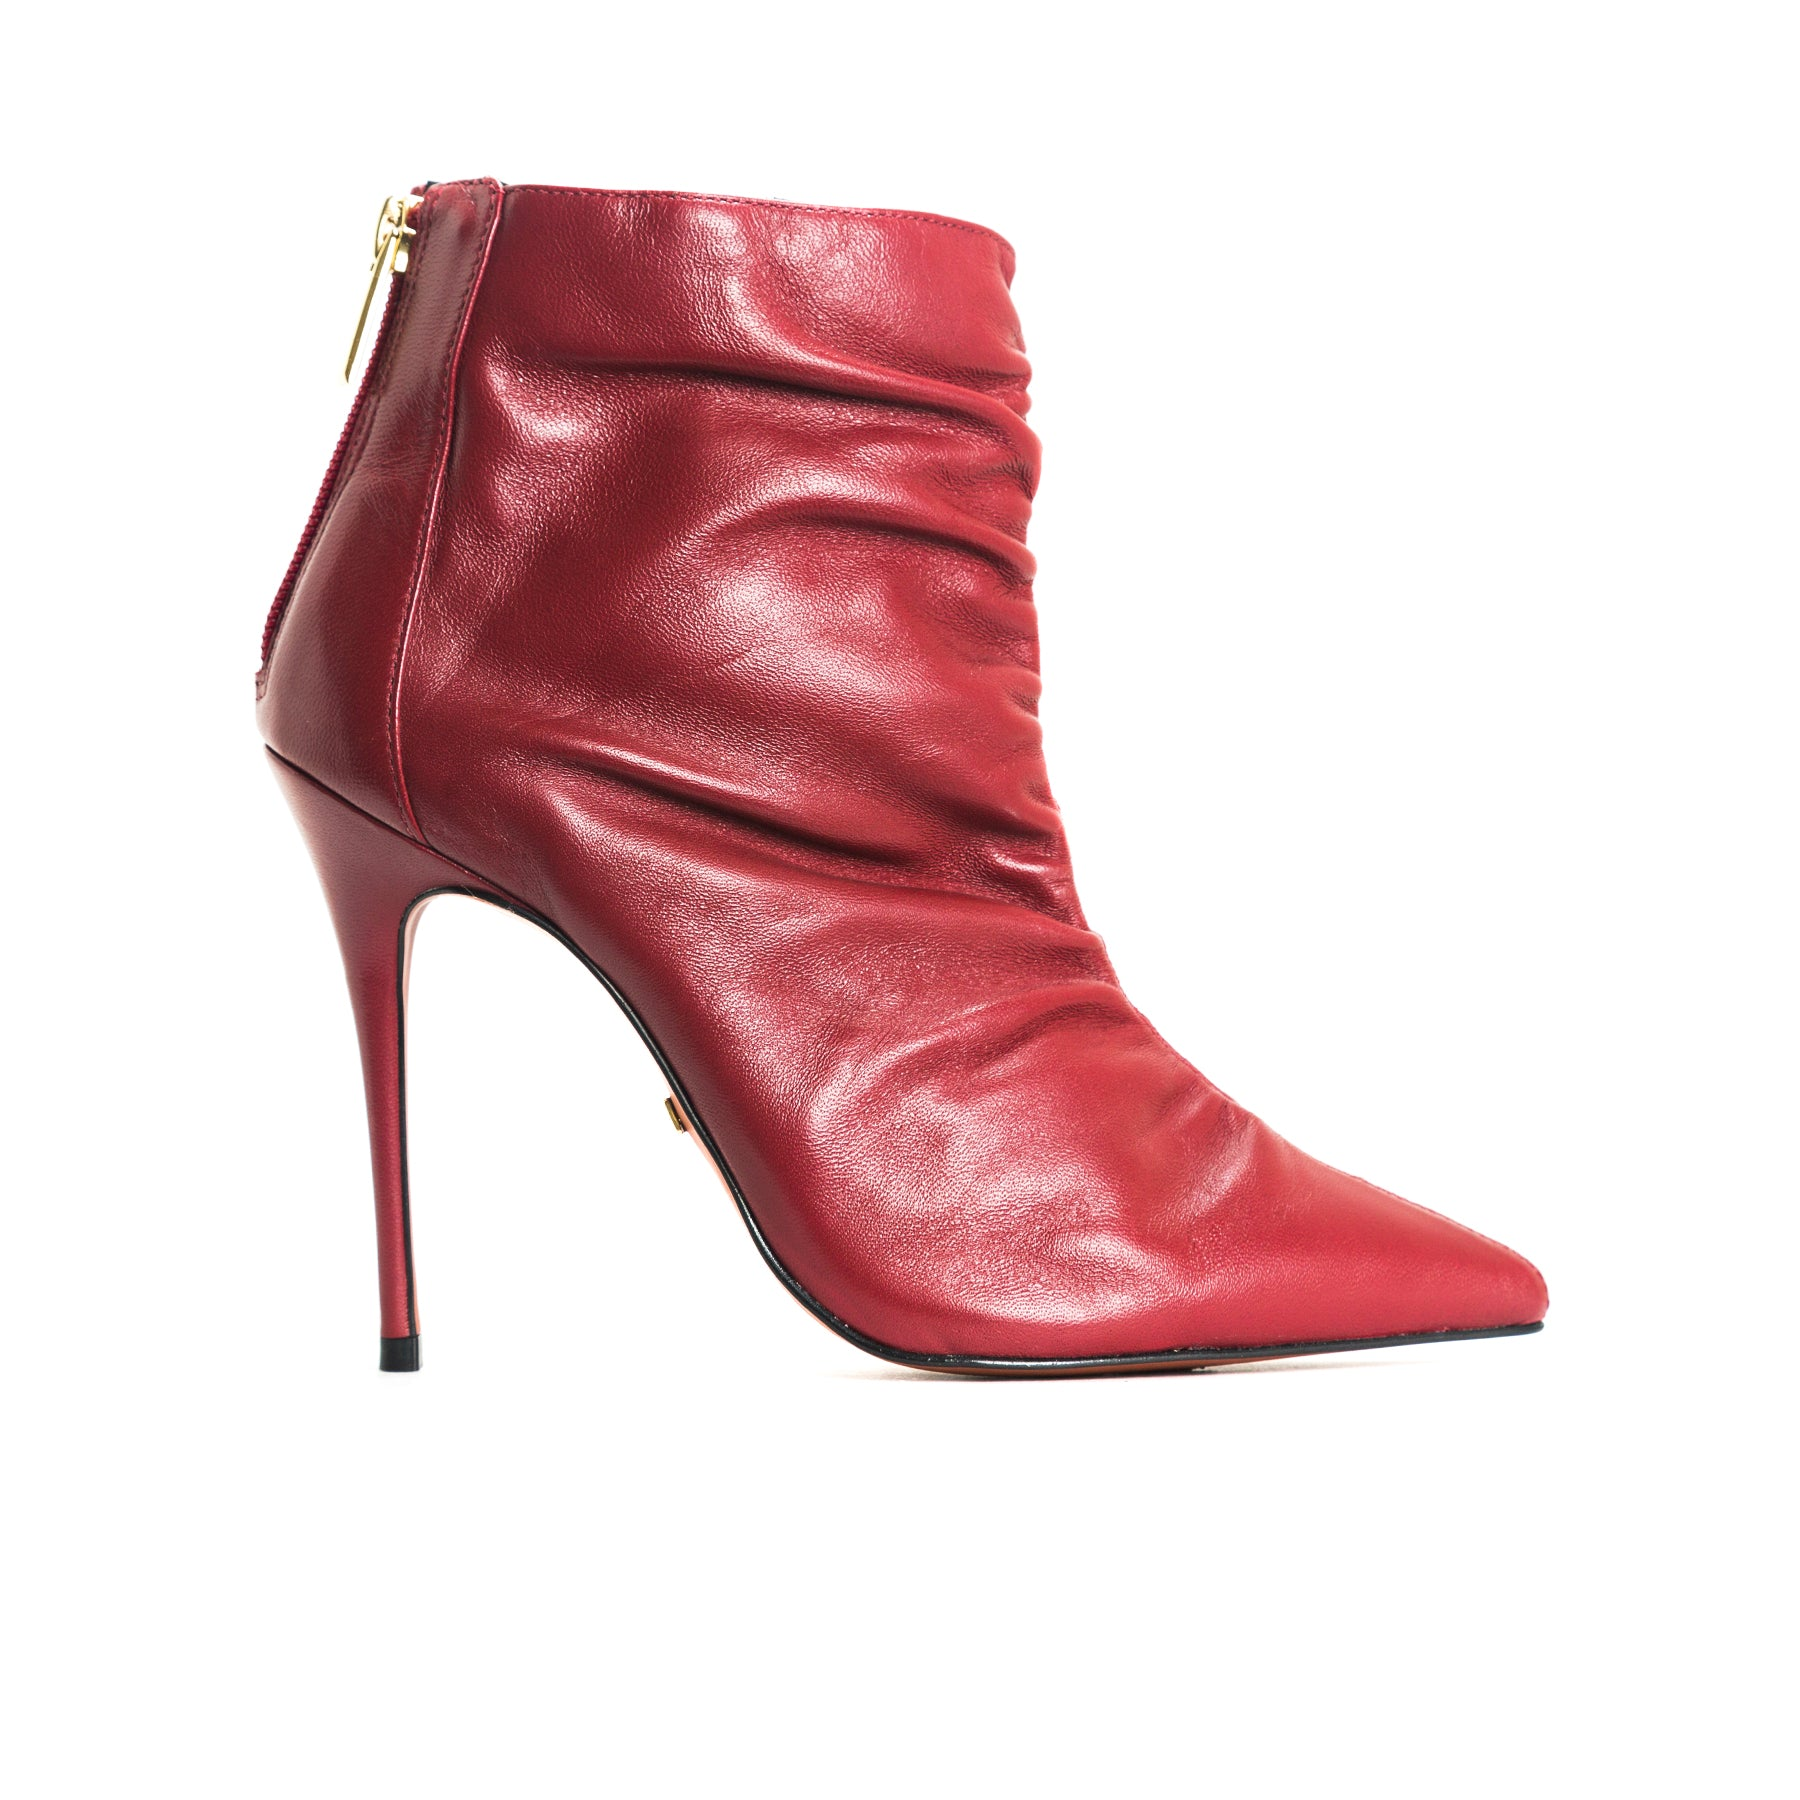 Kate Bordeau Leather Ankle Boots